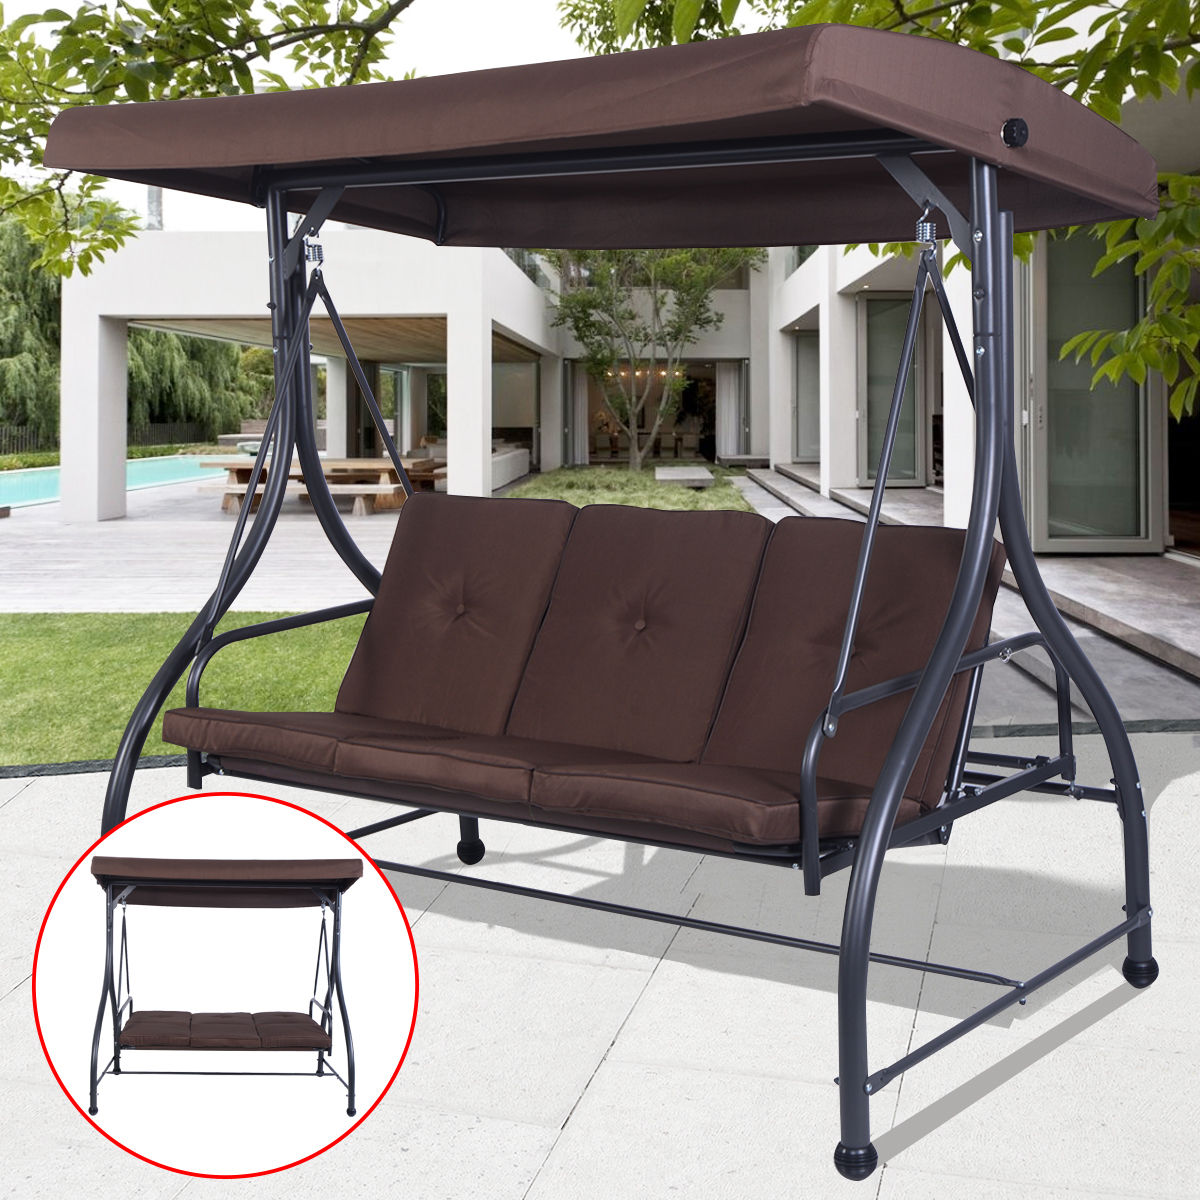 Costway Converting Outdoor Swing Canopy Hammock 3 Seats Patio Deck  Furniture Brown 0